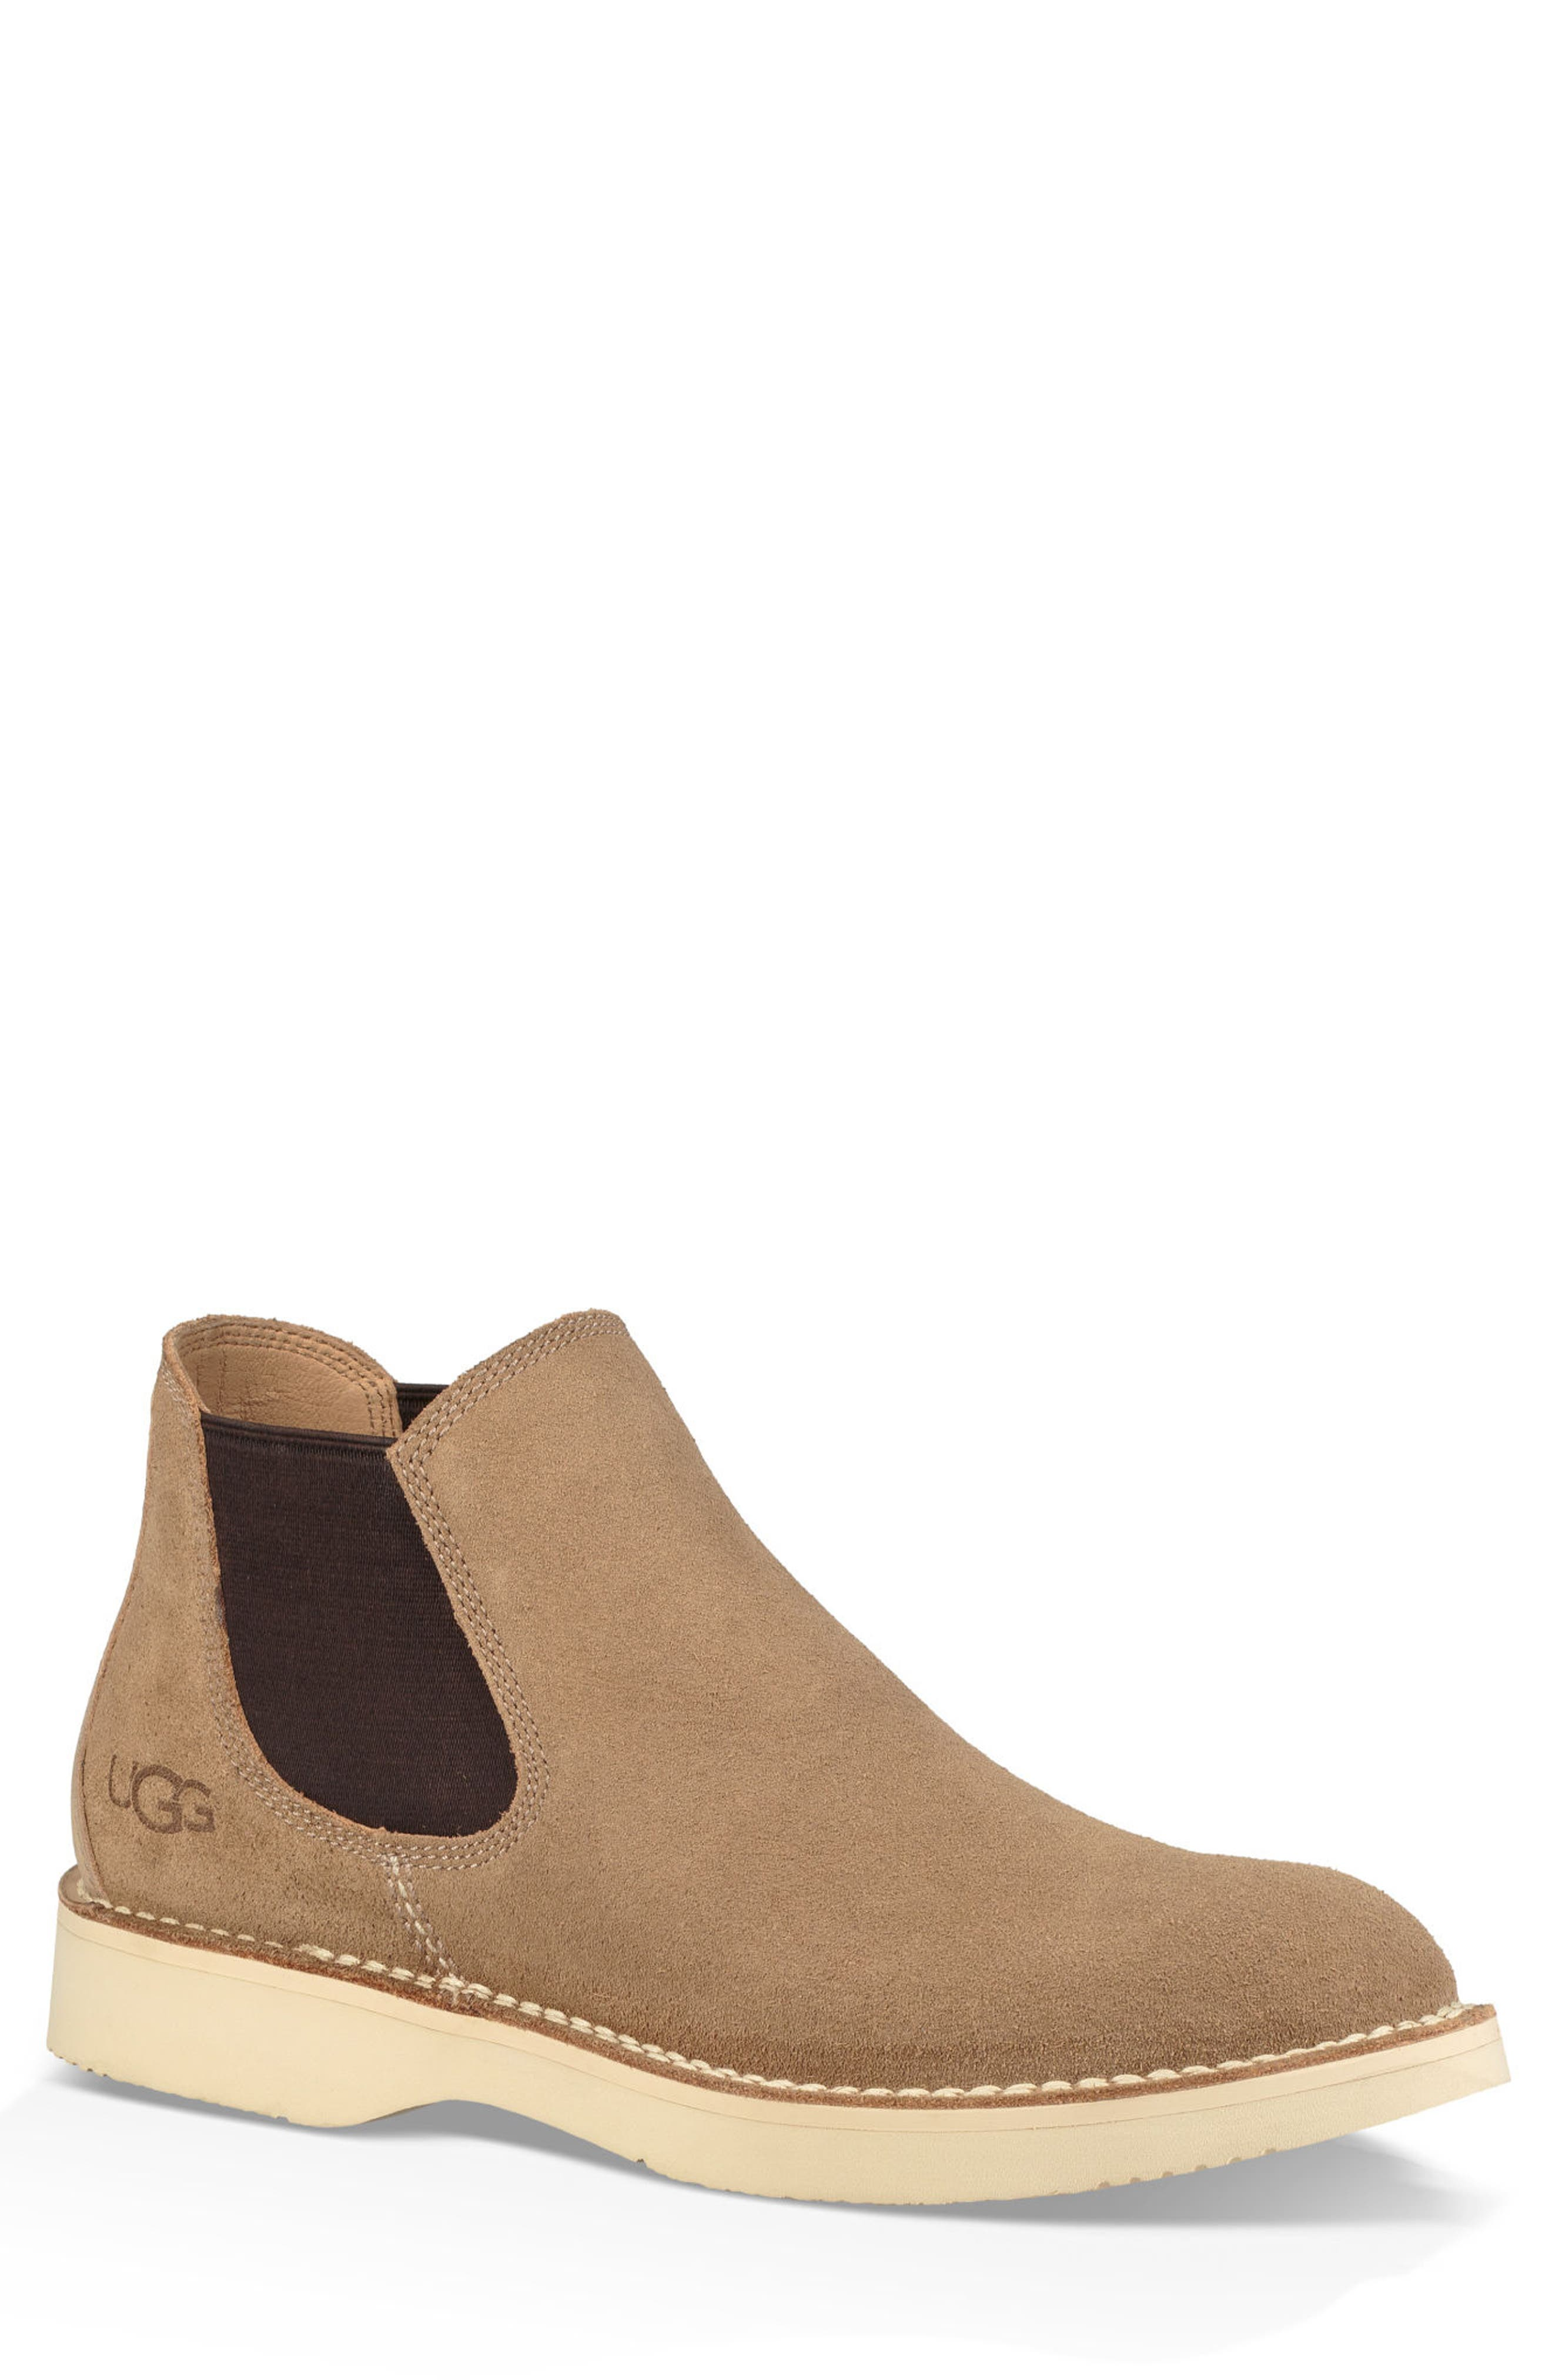 Ugg Camino Chelsea Boot- Brown